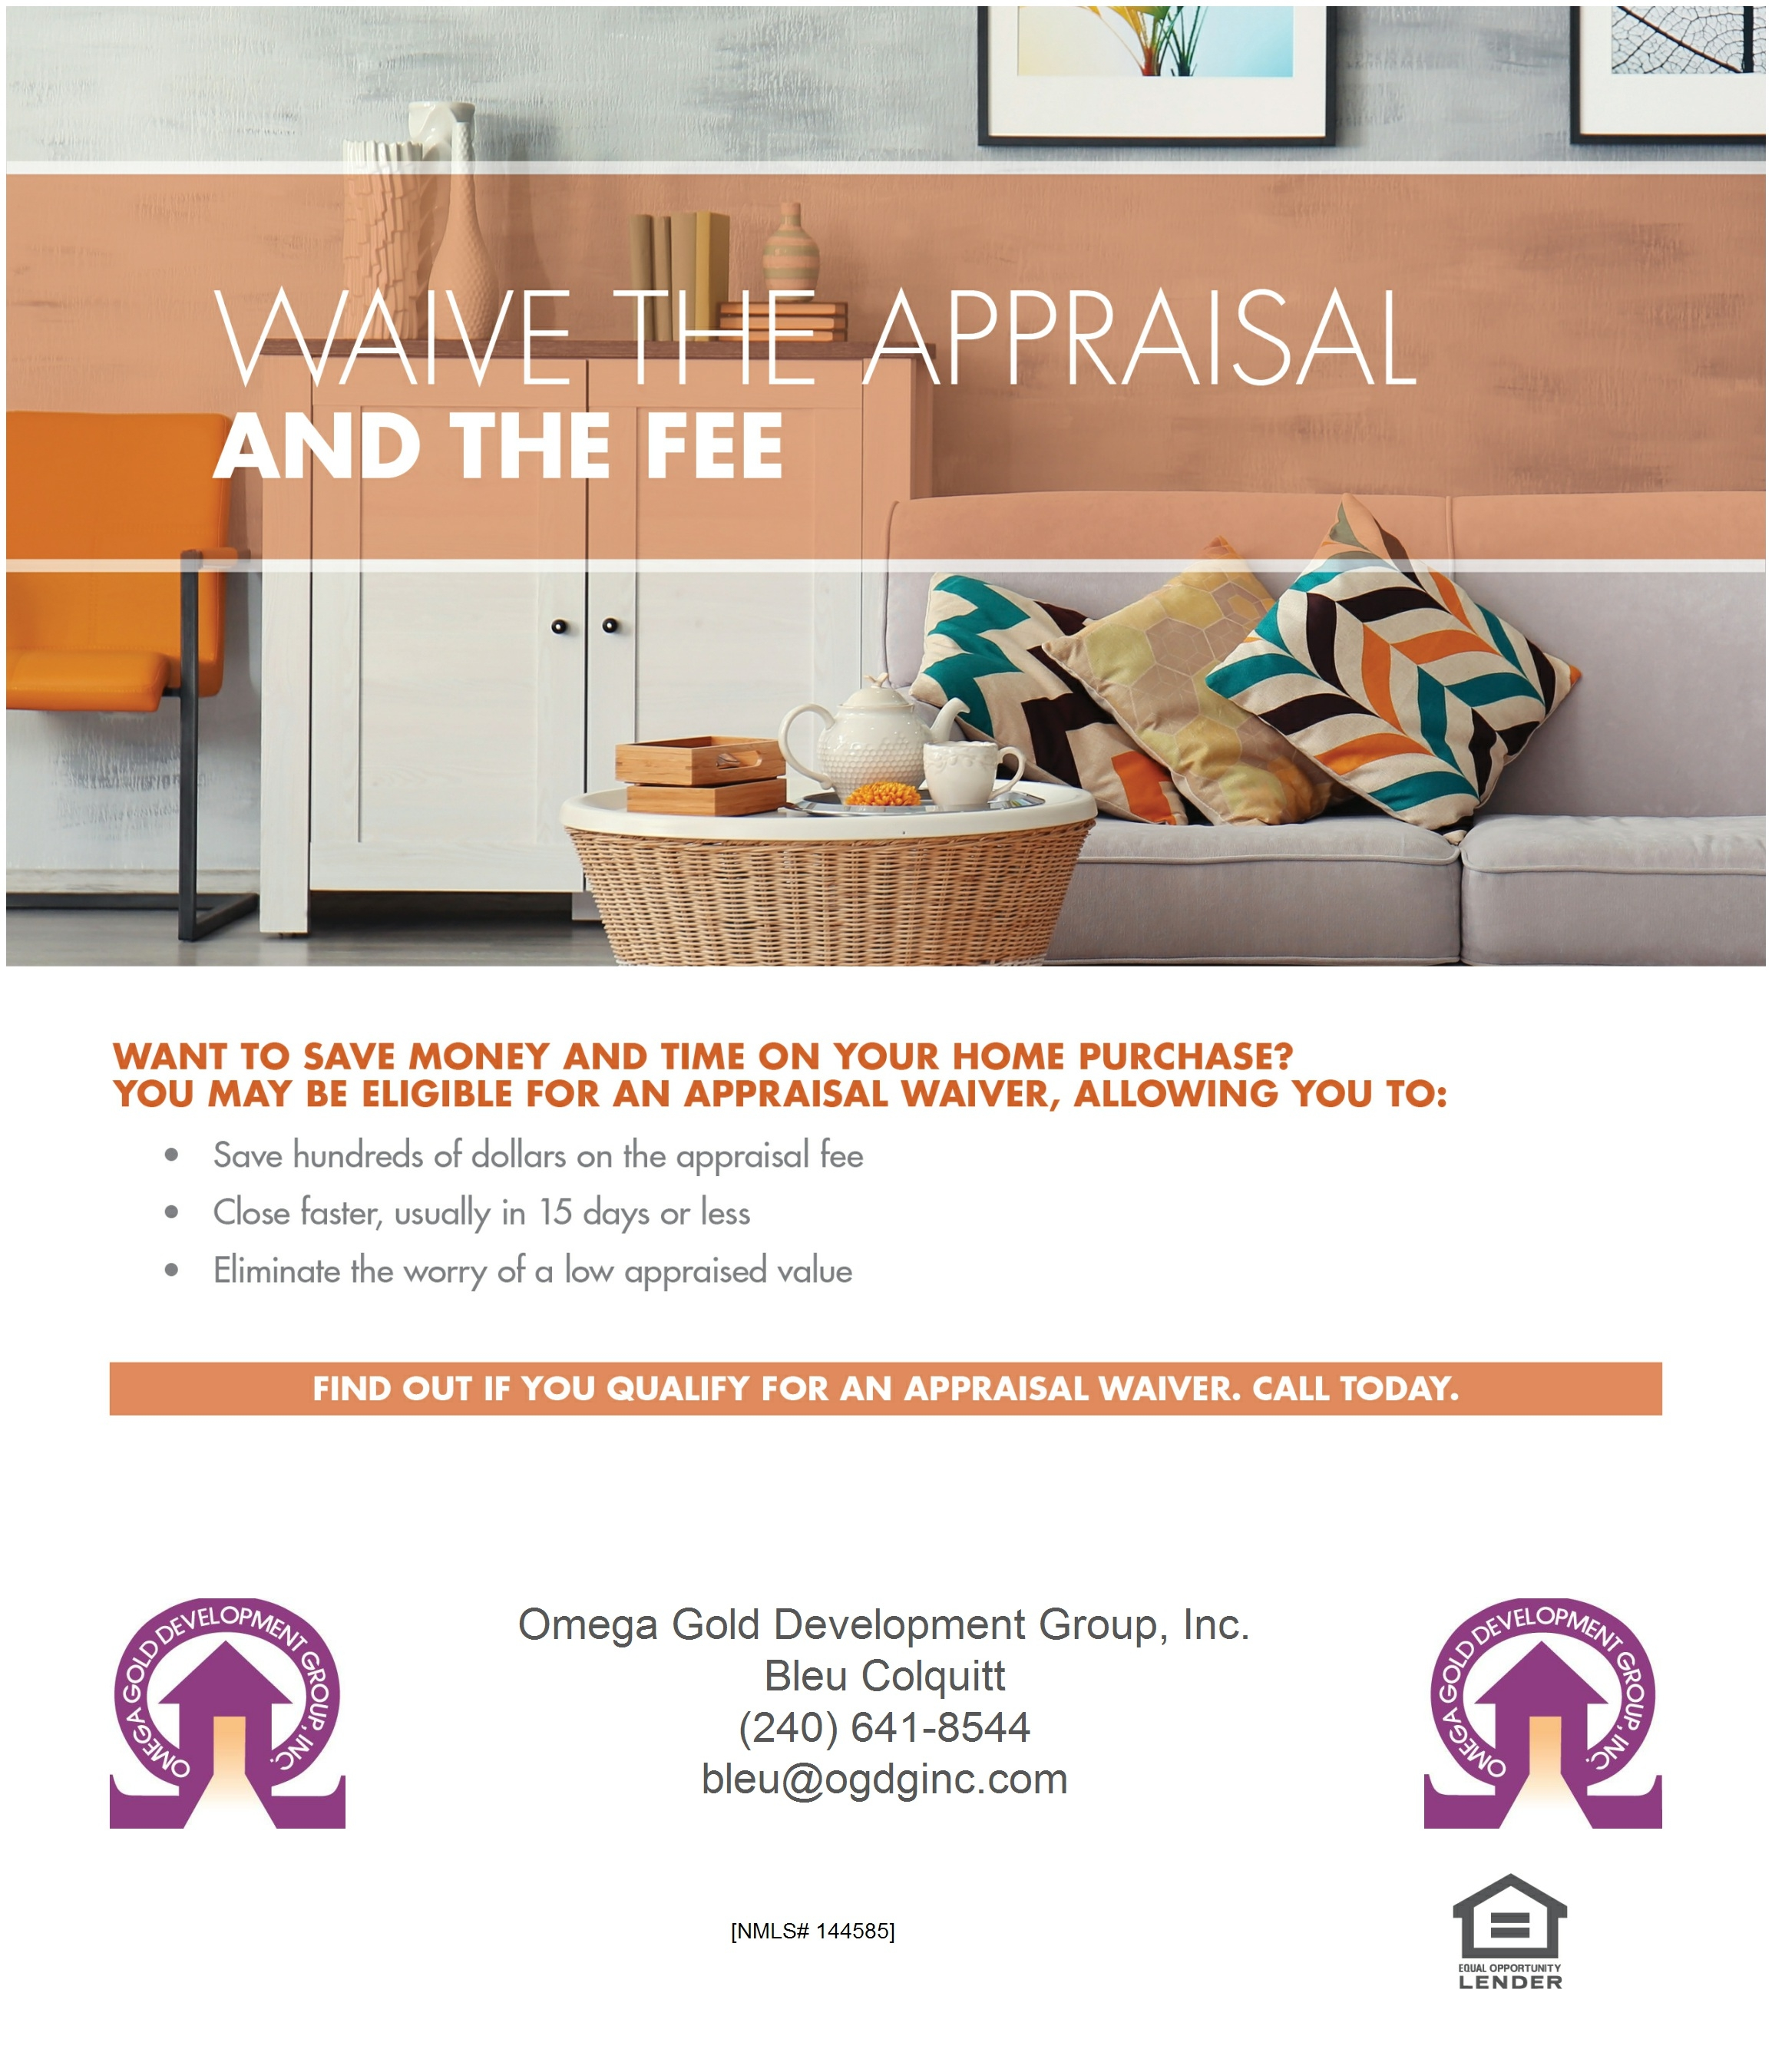 The PERFECT HOME is waiting for you -- let us find you the perfect loan to go with it. WAIVE THE APPRAISAL AND THE FEE!